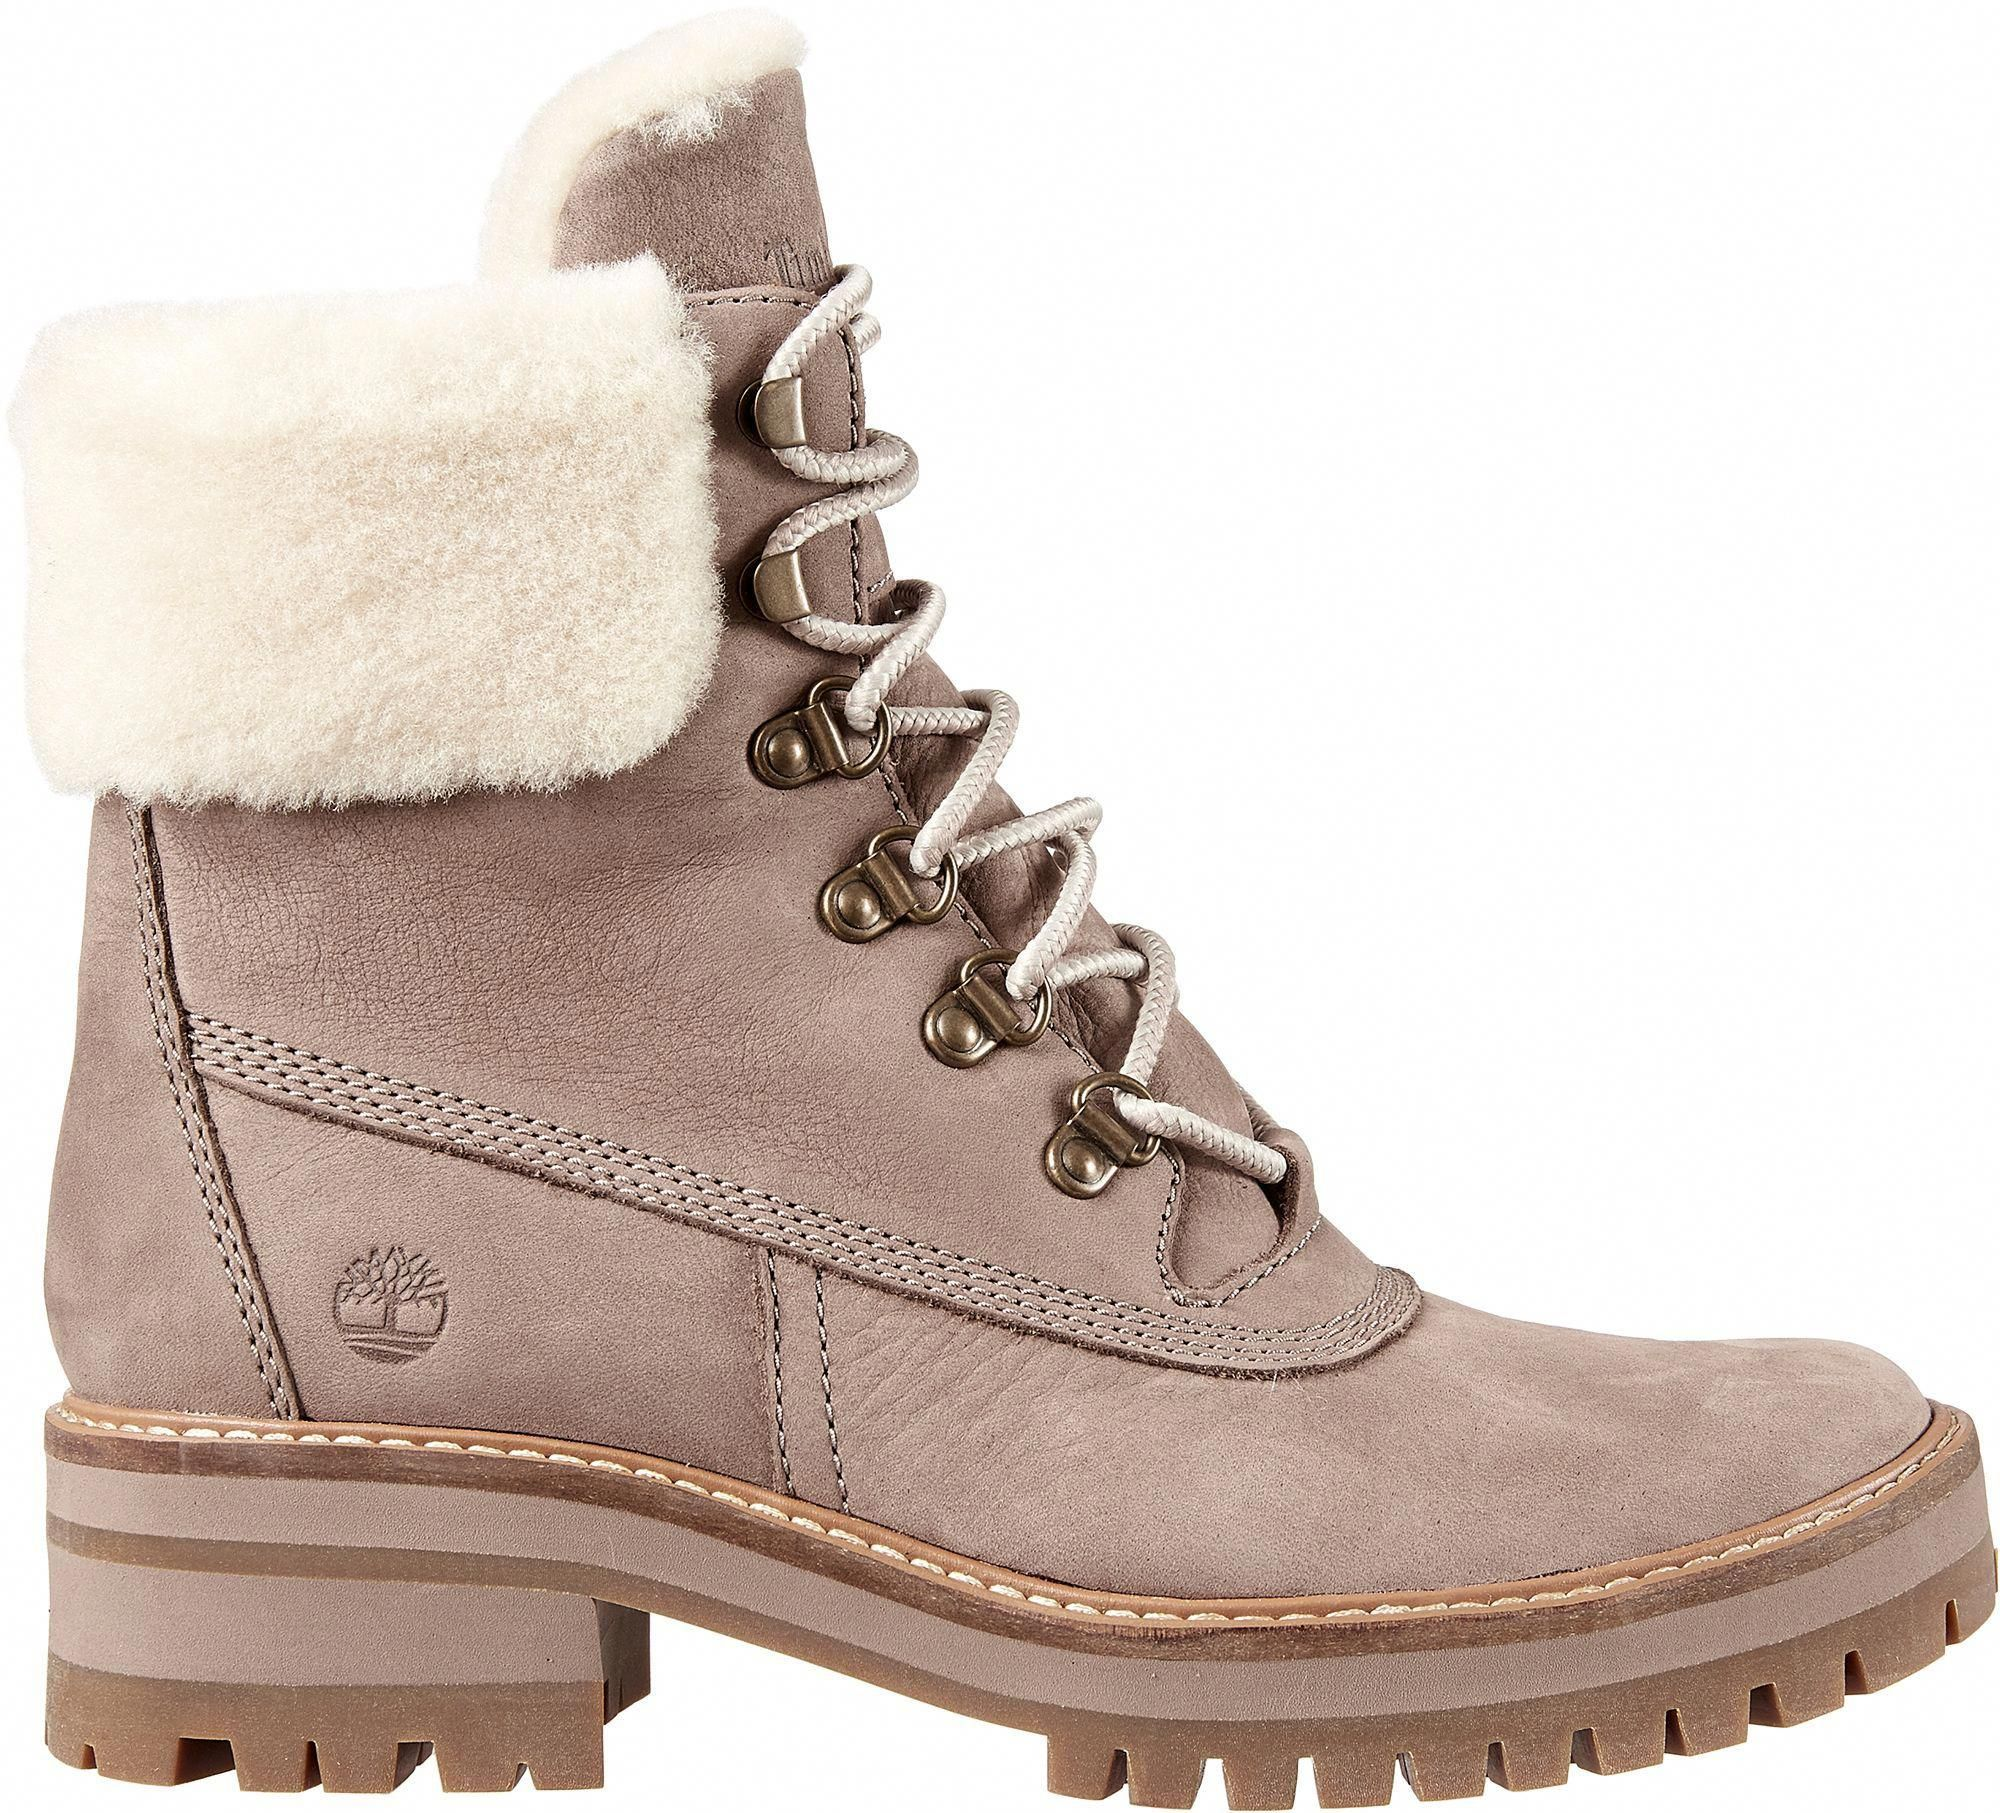 Timberland Boots, an American Icon | Mens winter fashion